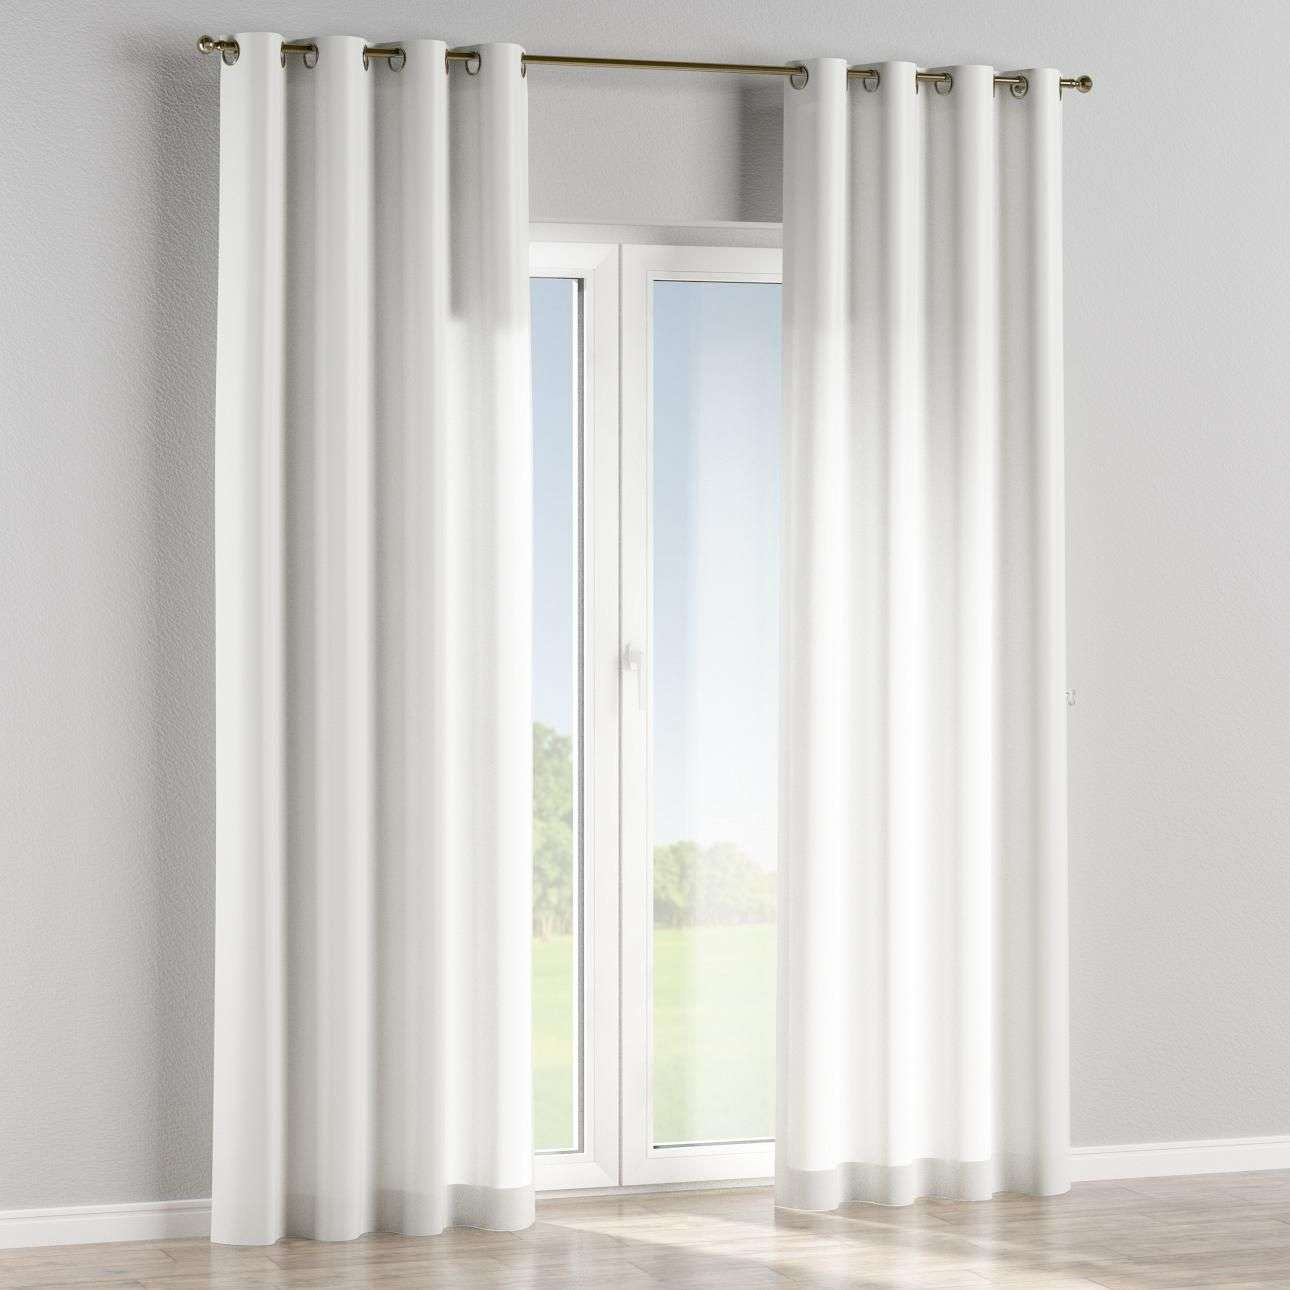 Eyelet curtains in collection Rustica, fabric: 138-21